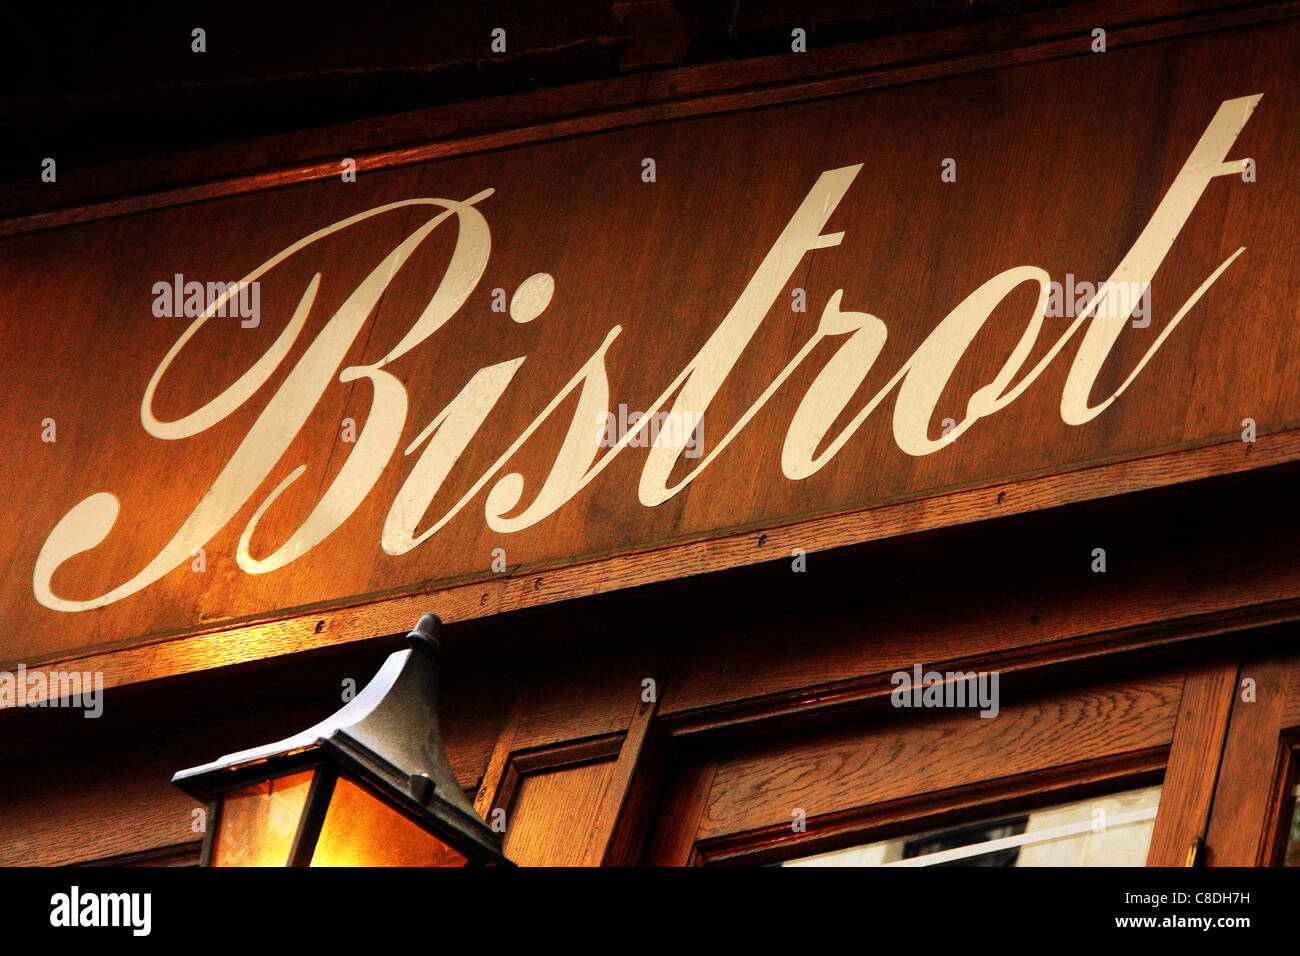 Bistrot sign - Stock Image